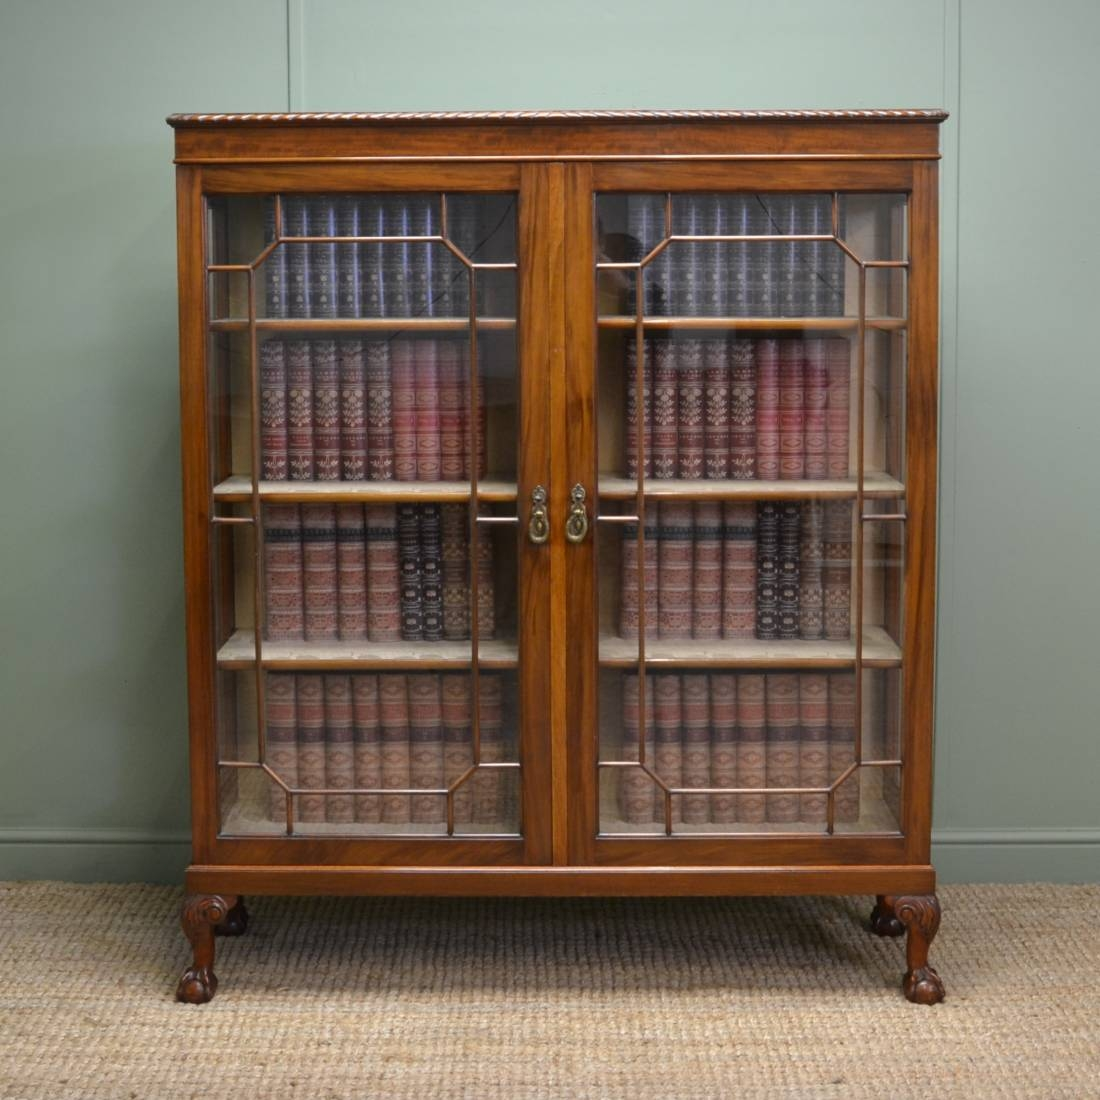 Popular Photo of Glazed Bookcases